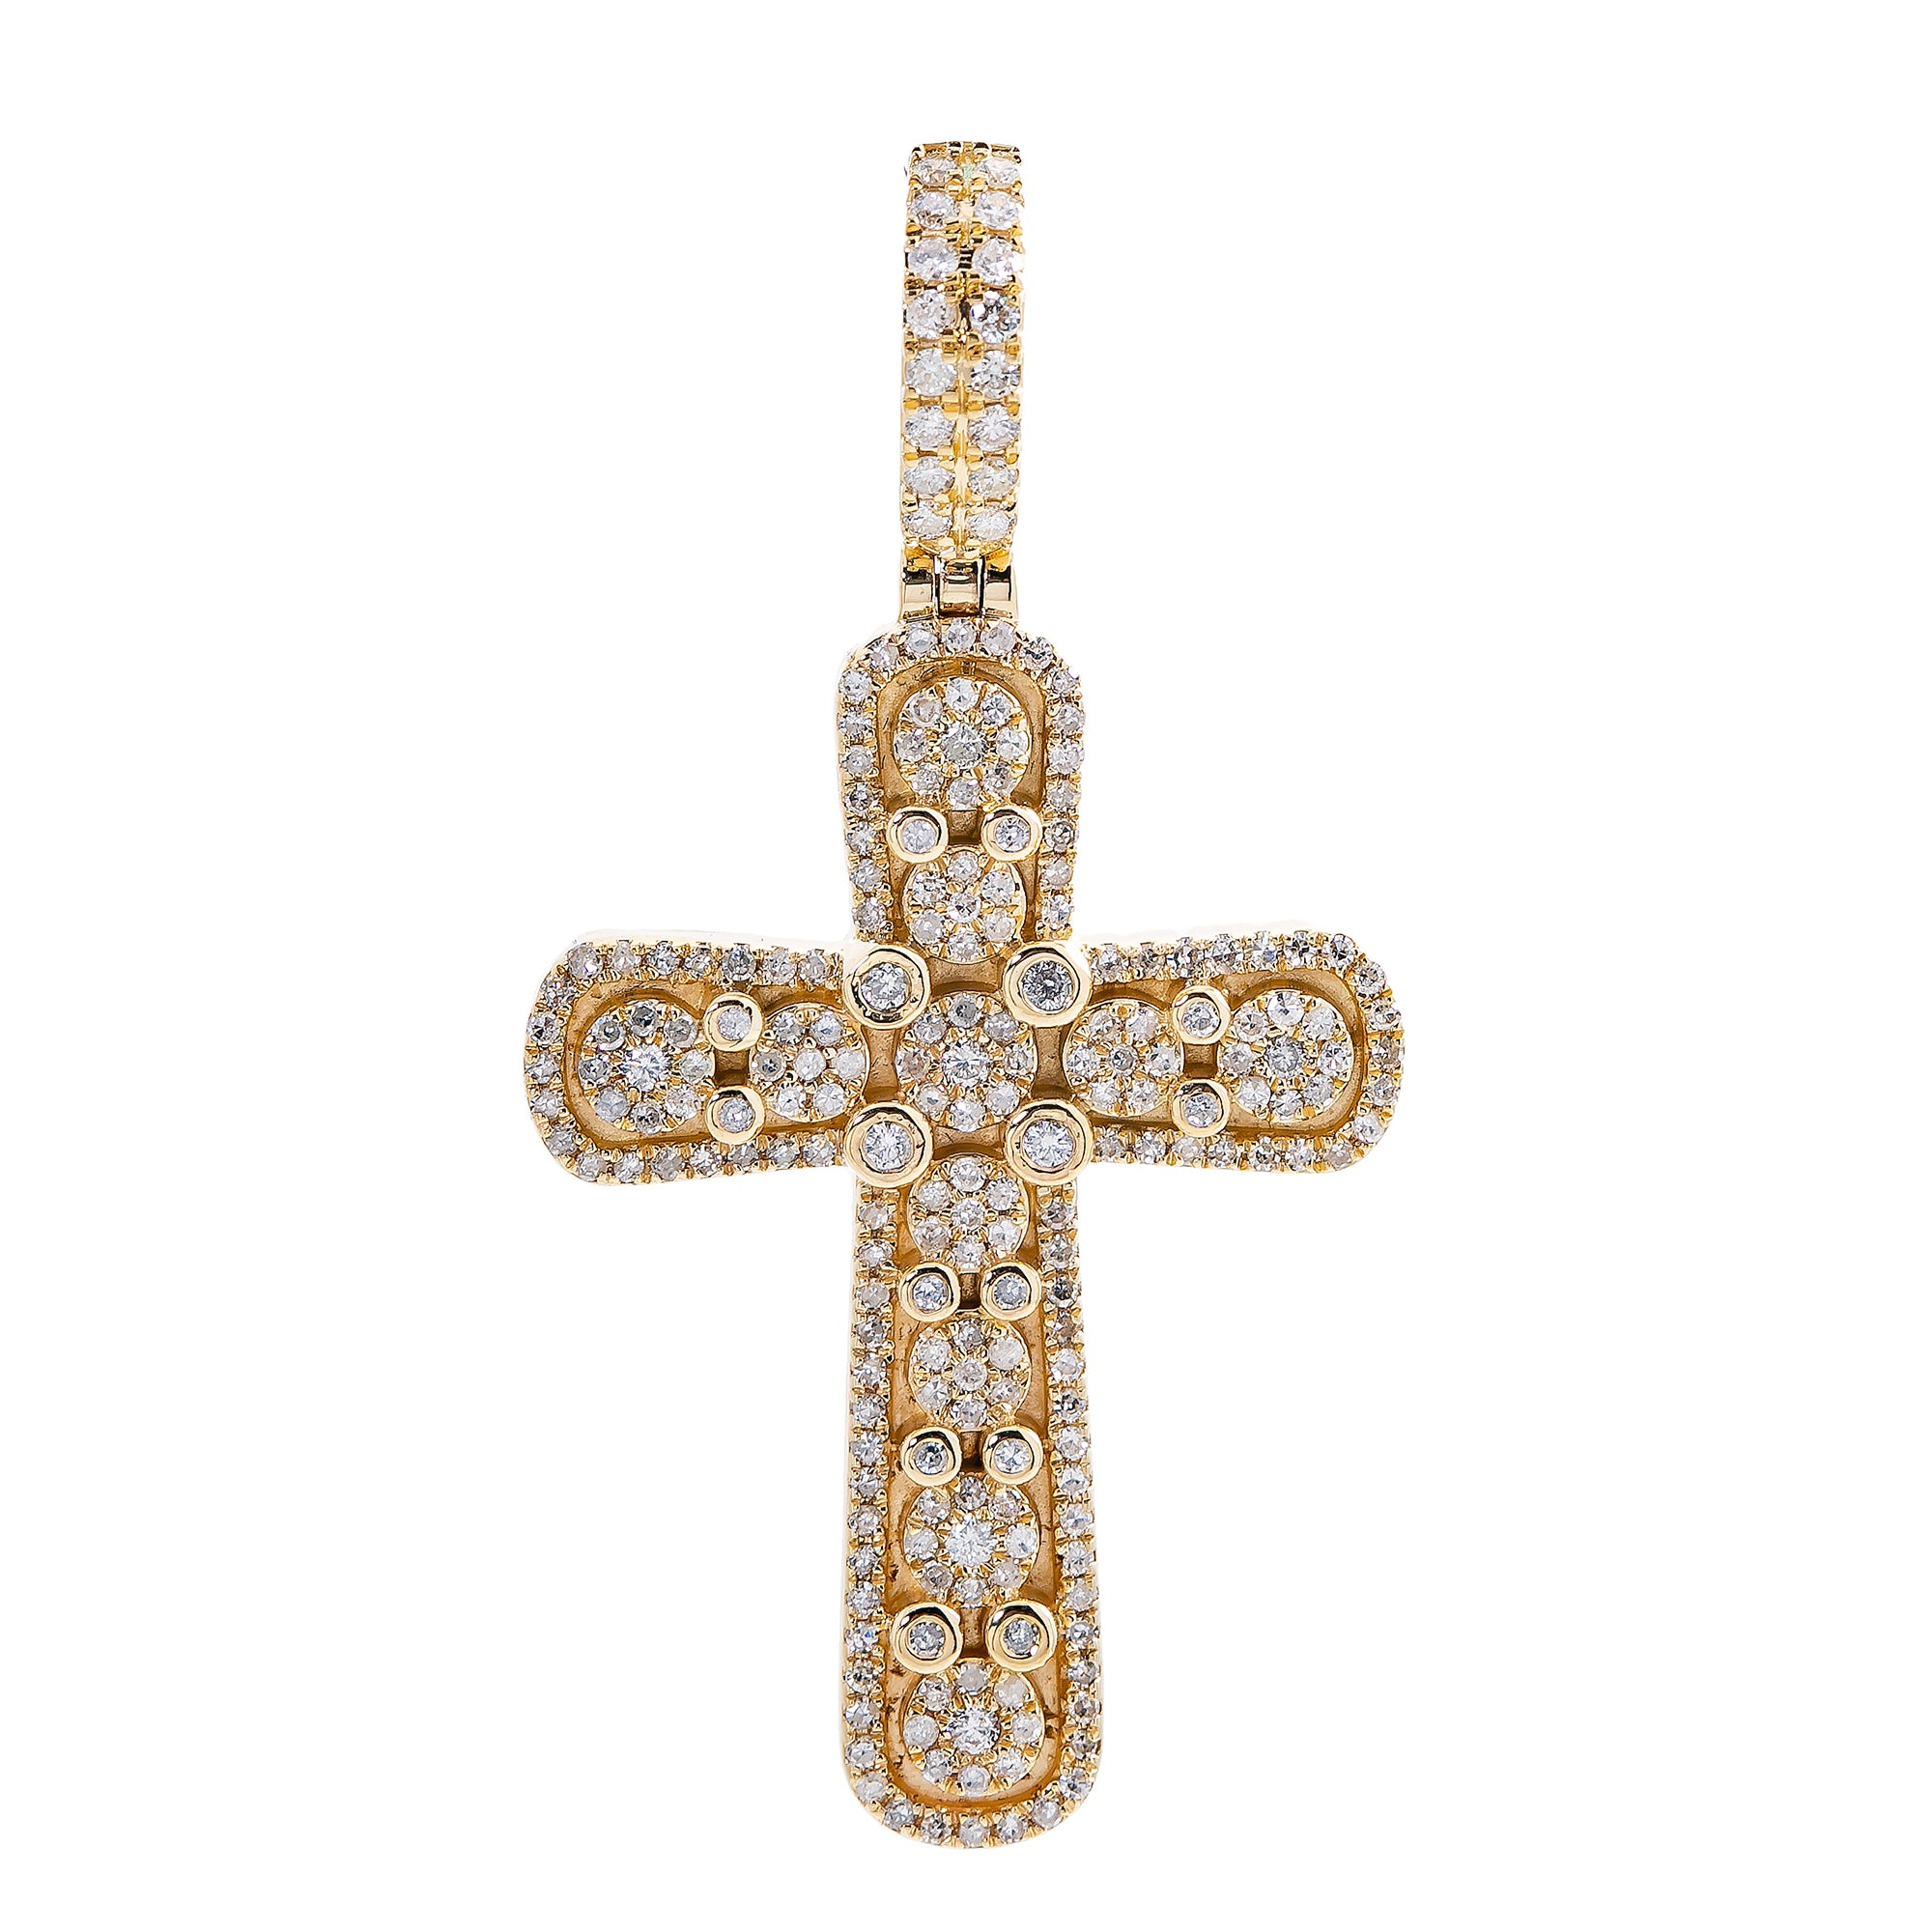 Unisex 14K Yellow Gold Cross Pendant with 1.1 CT Diamonds